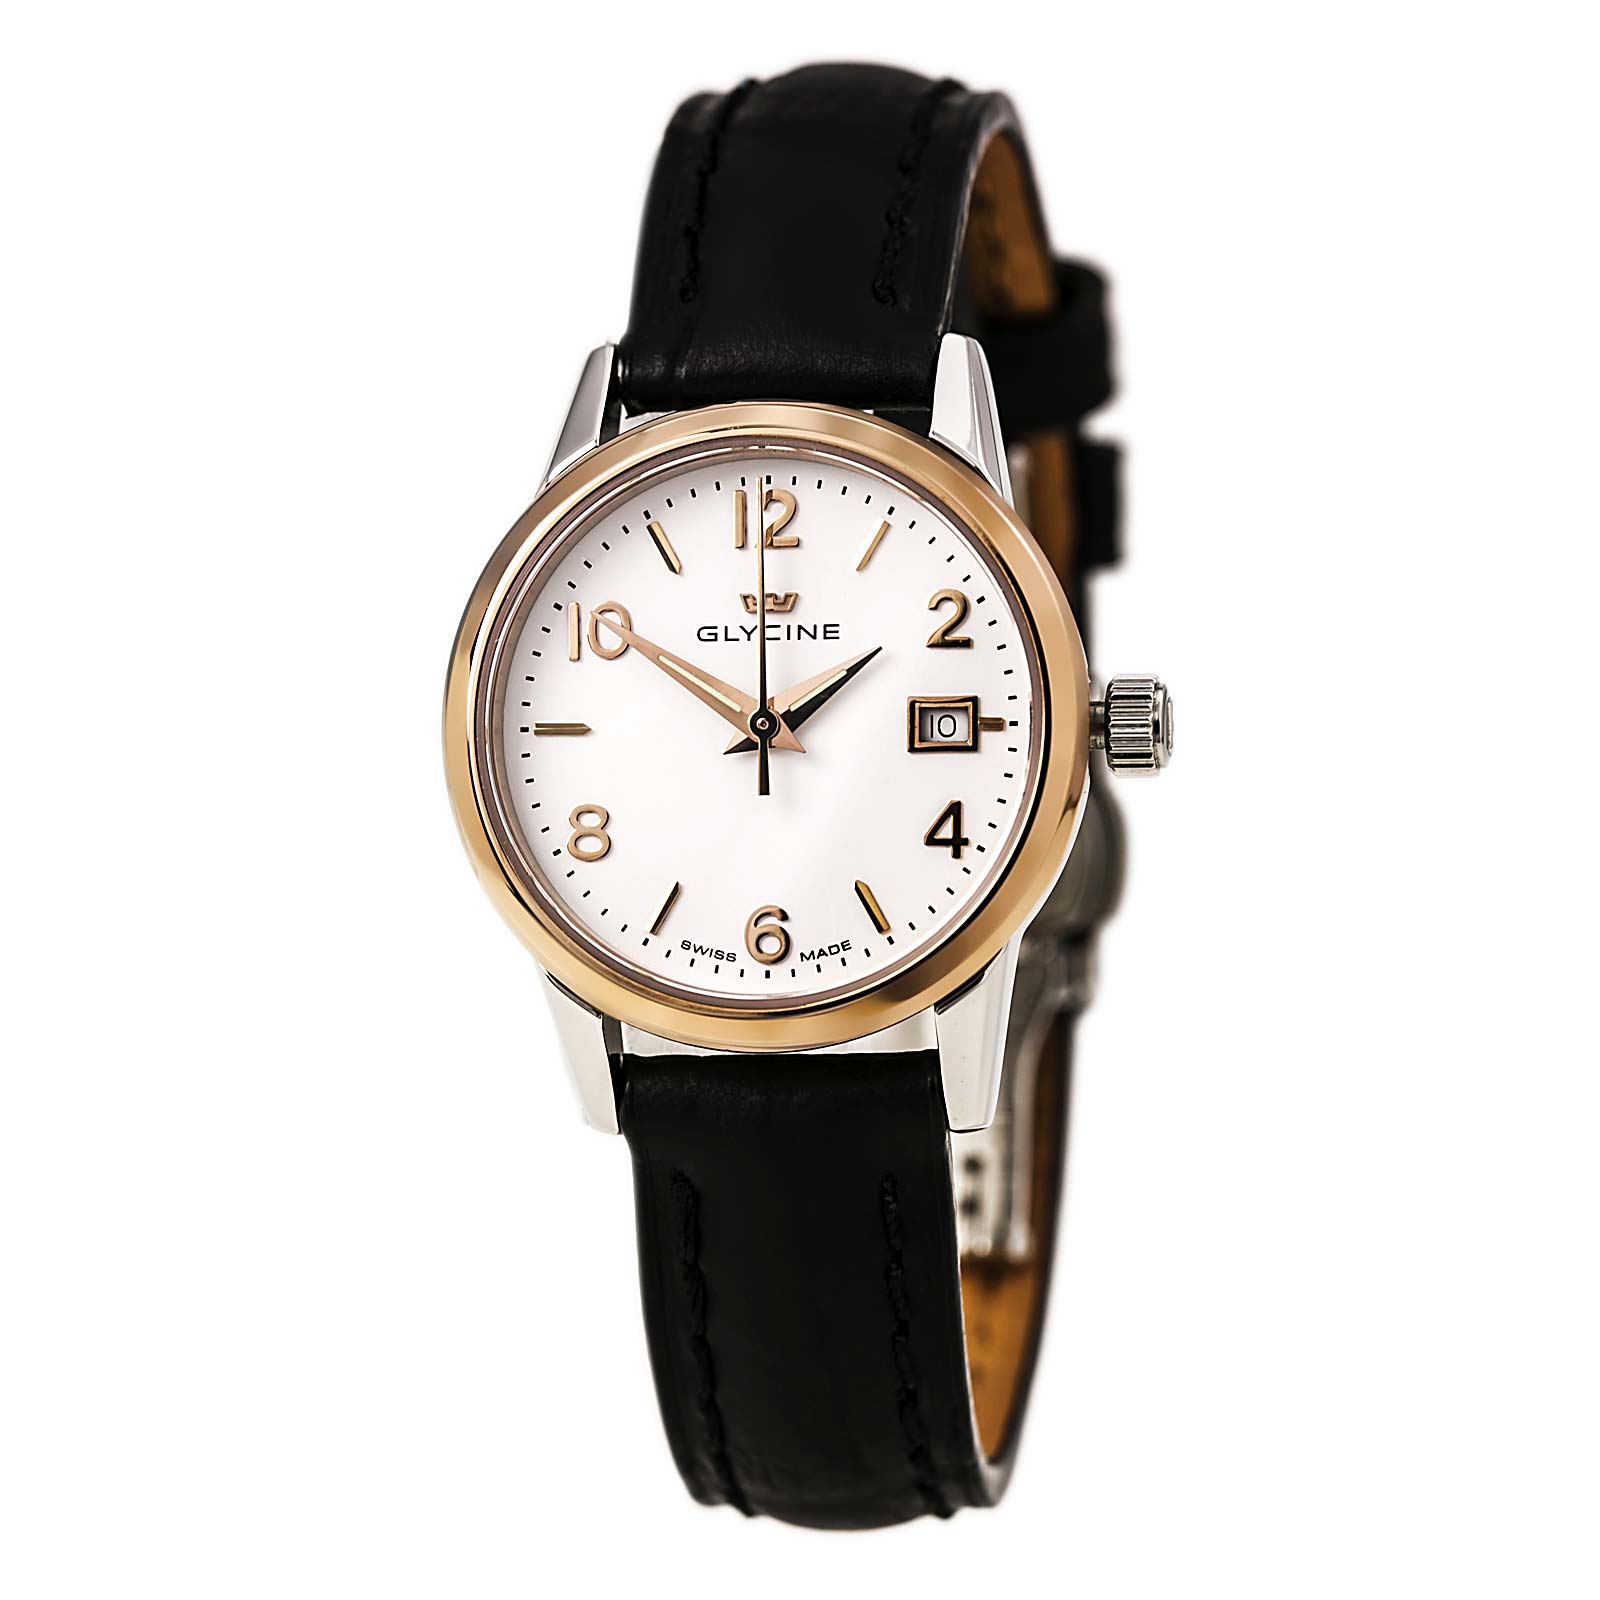 Glycine 3909-31 Women's Classic White Dial Black Leather Strap Date Watch